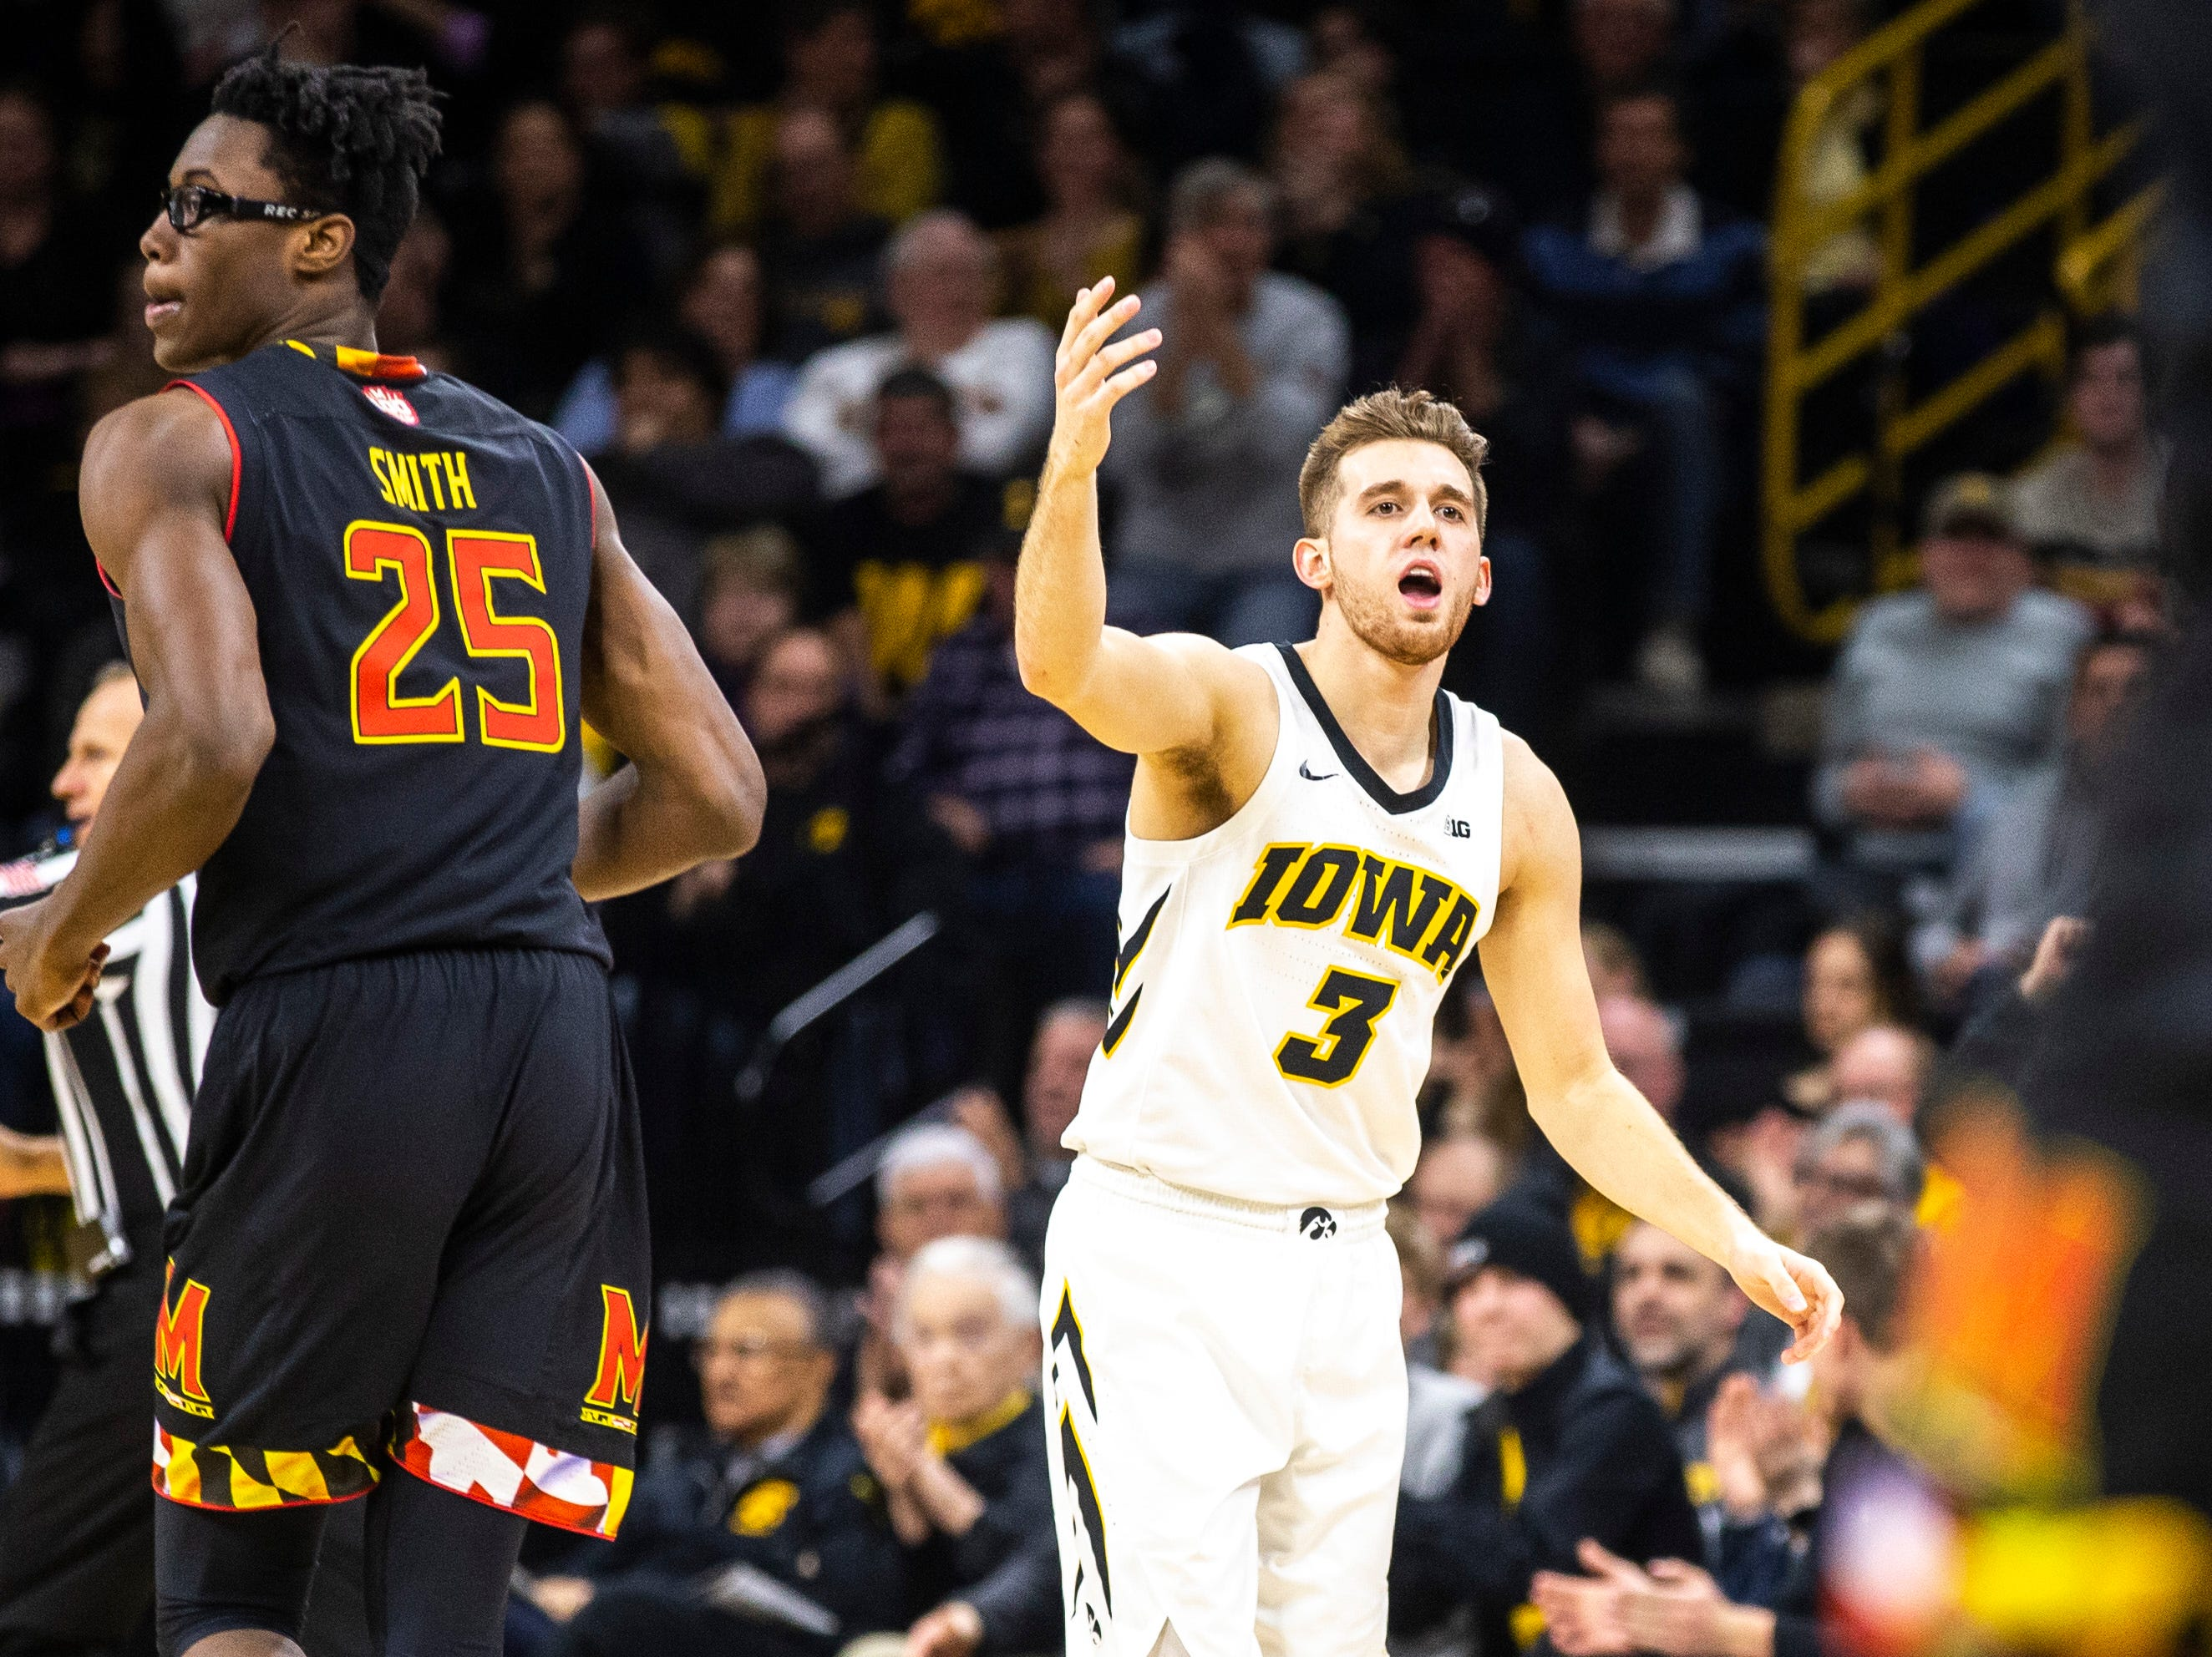 Iowa guard Jordan Bohannon (3) jumps up the crowd after making a 3-point basket while Maryland forward Jalen Smith (25) runs up court during a NCAA Big Ten Conference men's basketball game on Tuesday, Feb. 19, 2019 at Carver-Hawkeye Arena in Iowa City, Iowa.